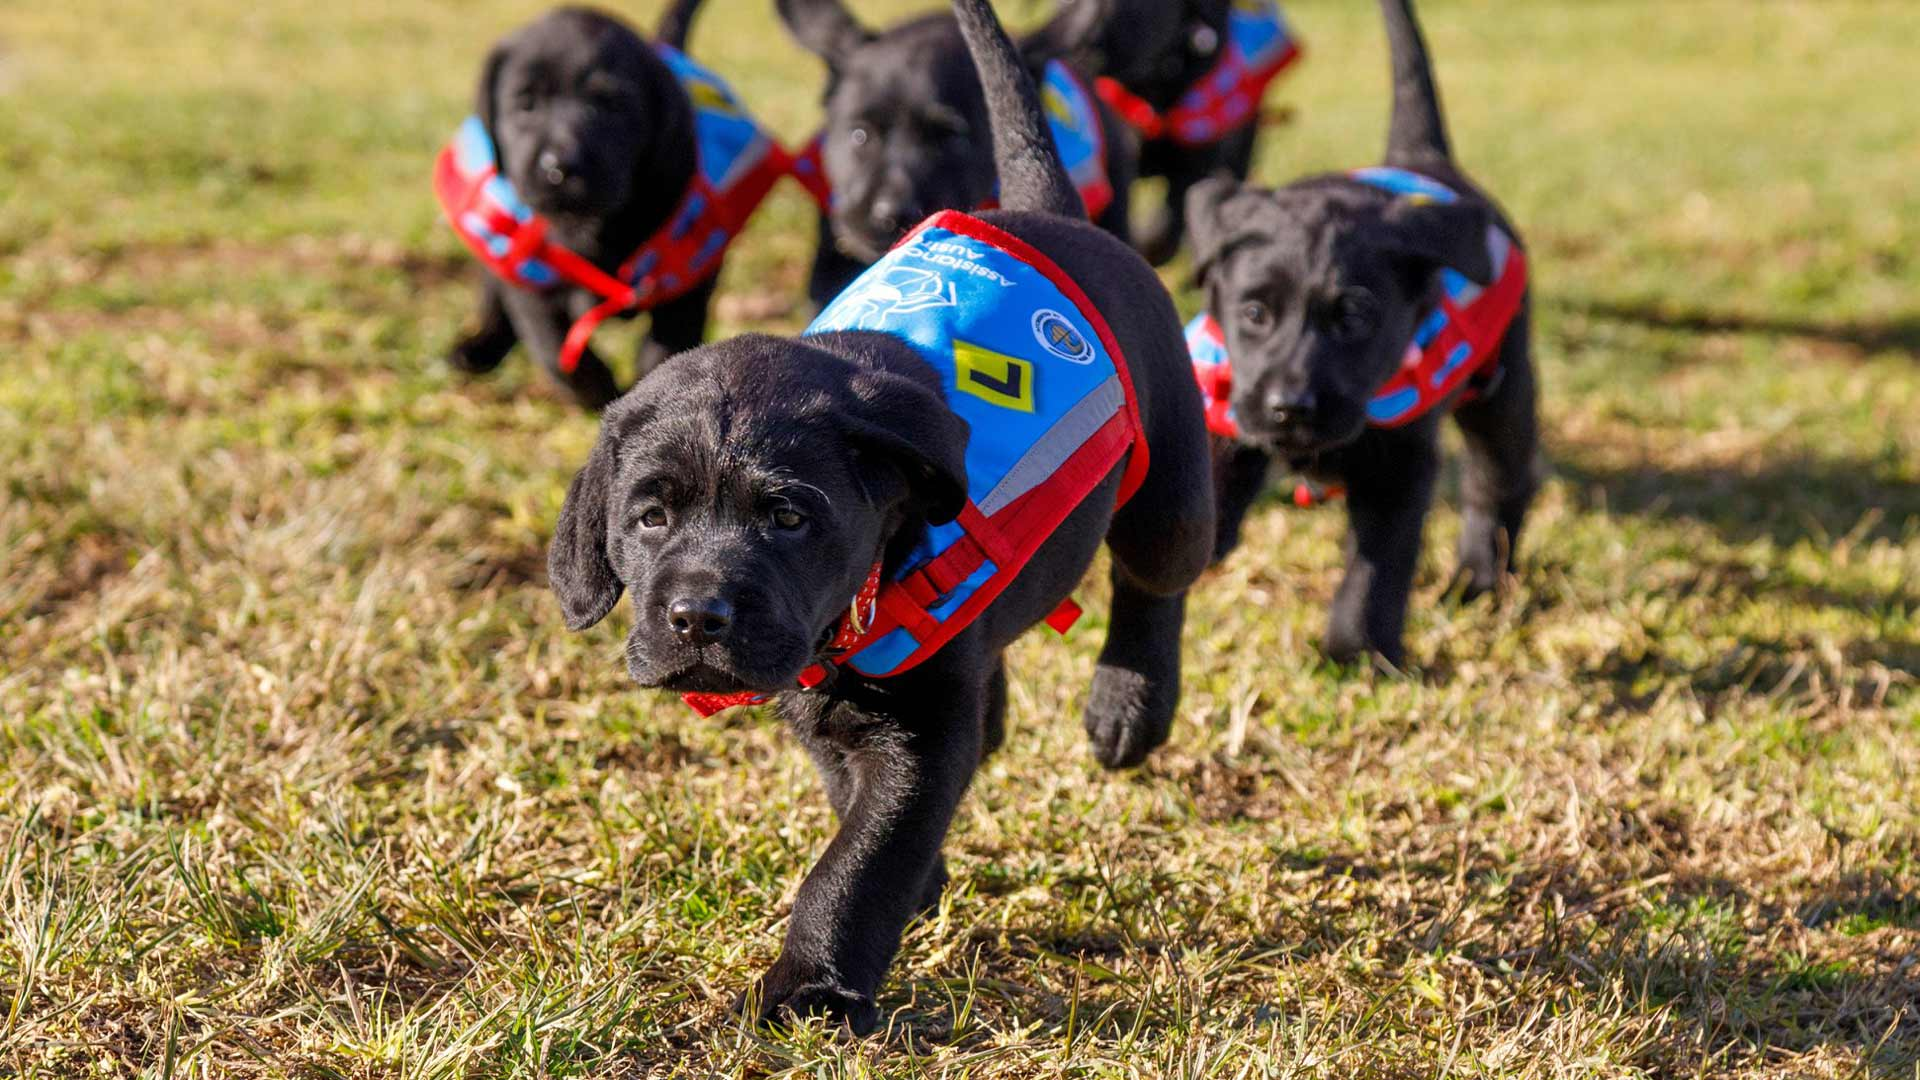 Sydney International Airport Now Has a Team of Very Good Dogs to Help Passengers De-Stress